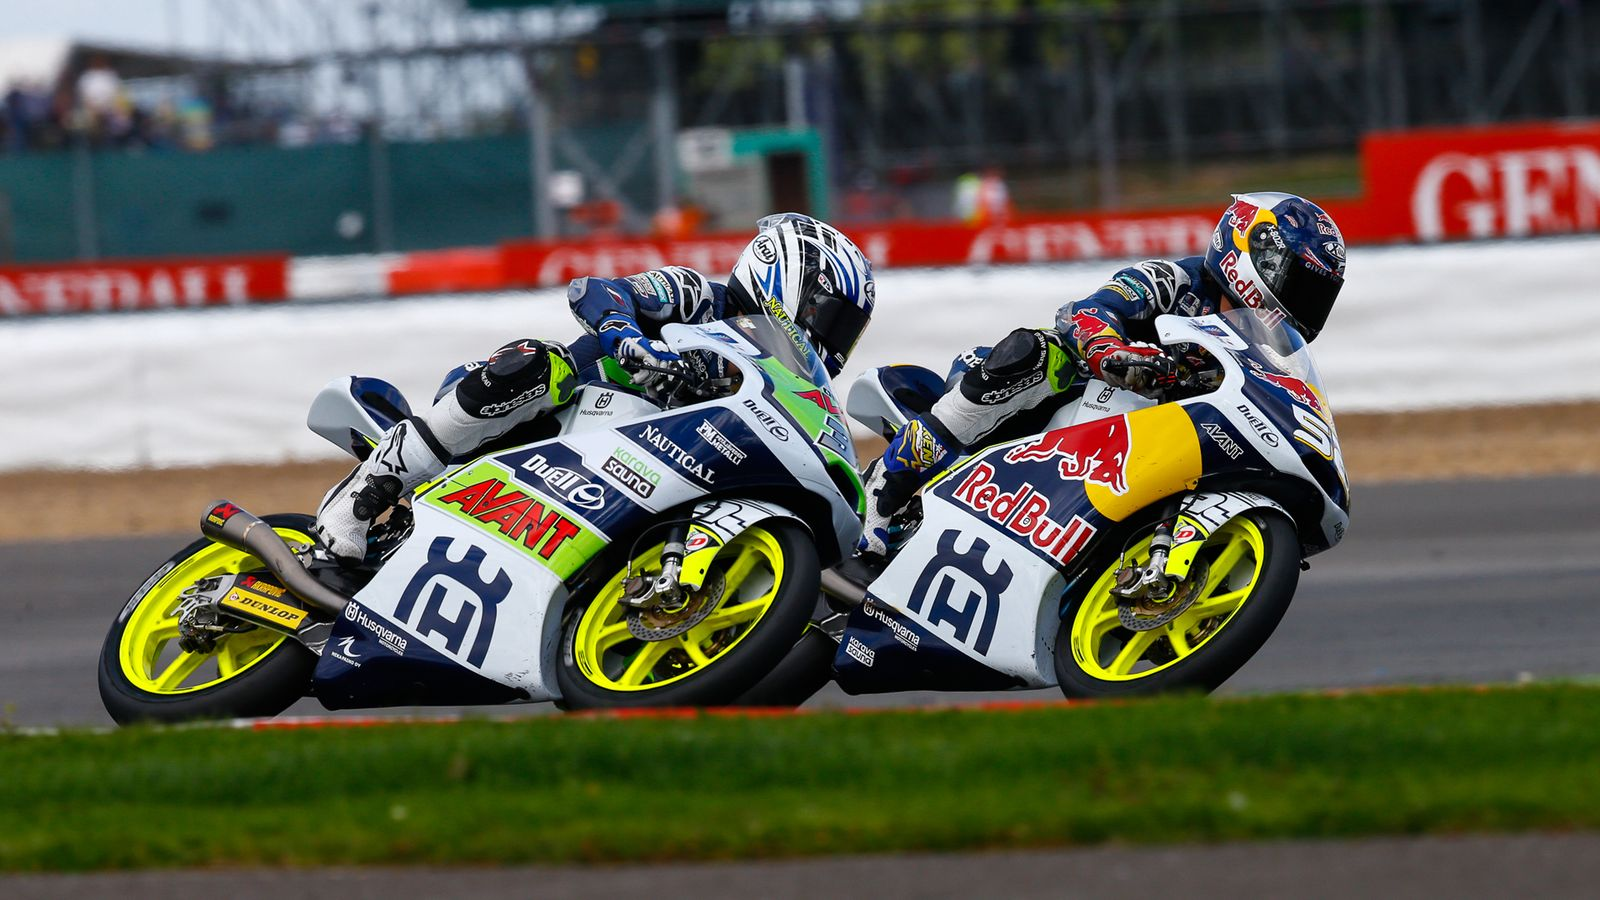 motogp-racing-wallpaper-background-hd-20